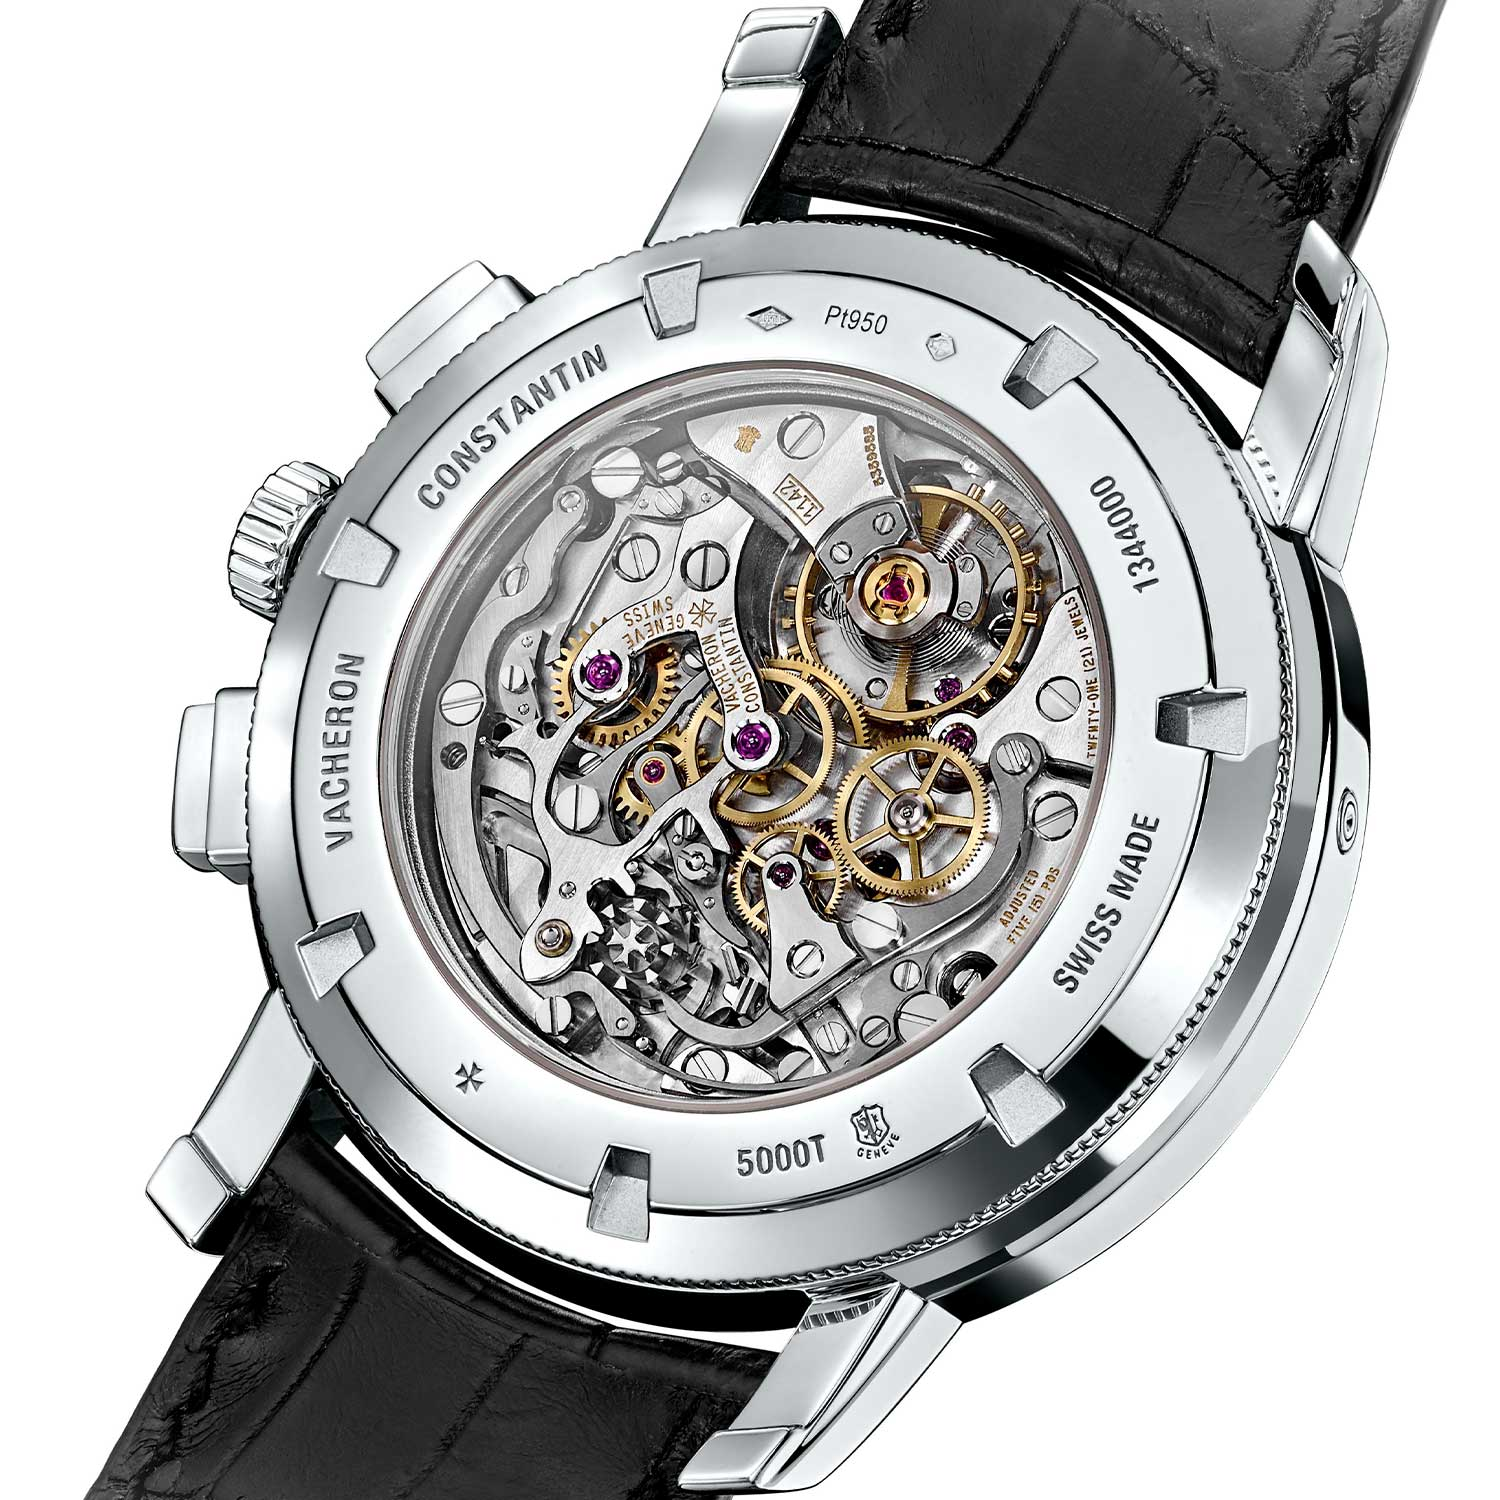 The Vacheron Constantin Traditionnelle Chronograph Perpetual Calendar was powered by the calibre 1142 QP, the Manufacture's take on the Lemania-based chronograph with an incorporated perpetual calendar